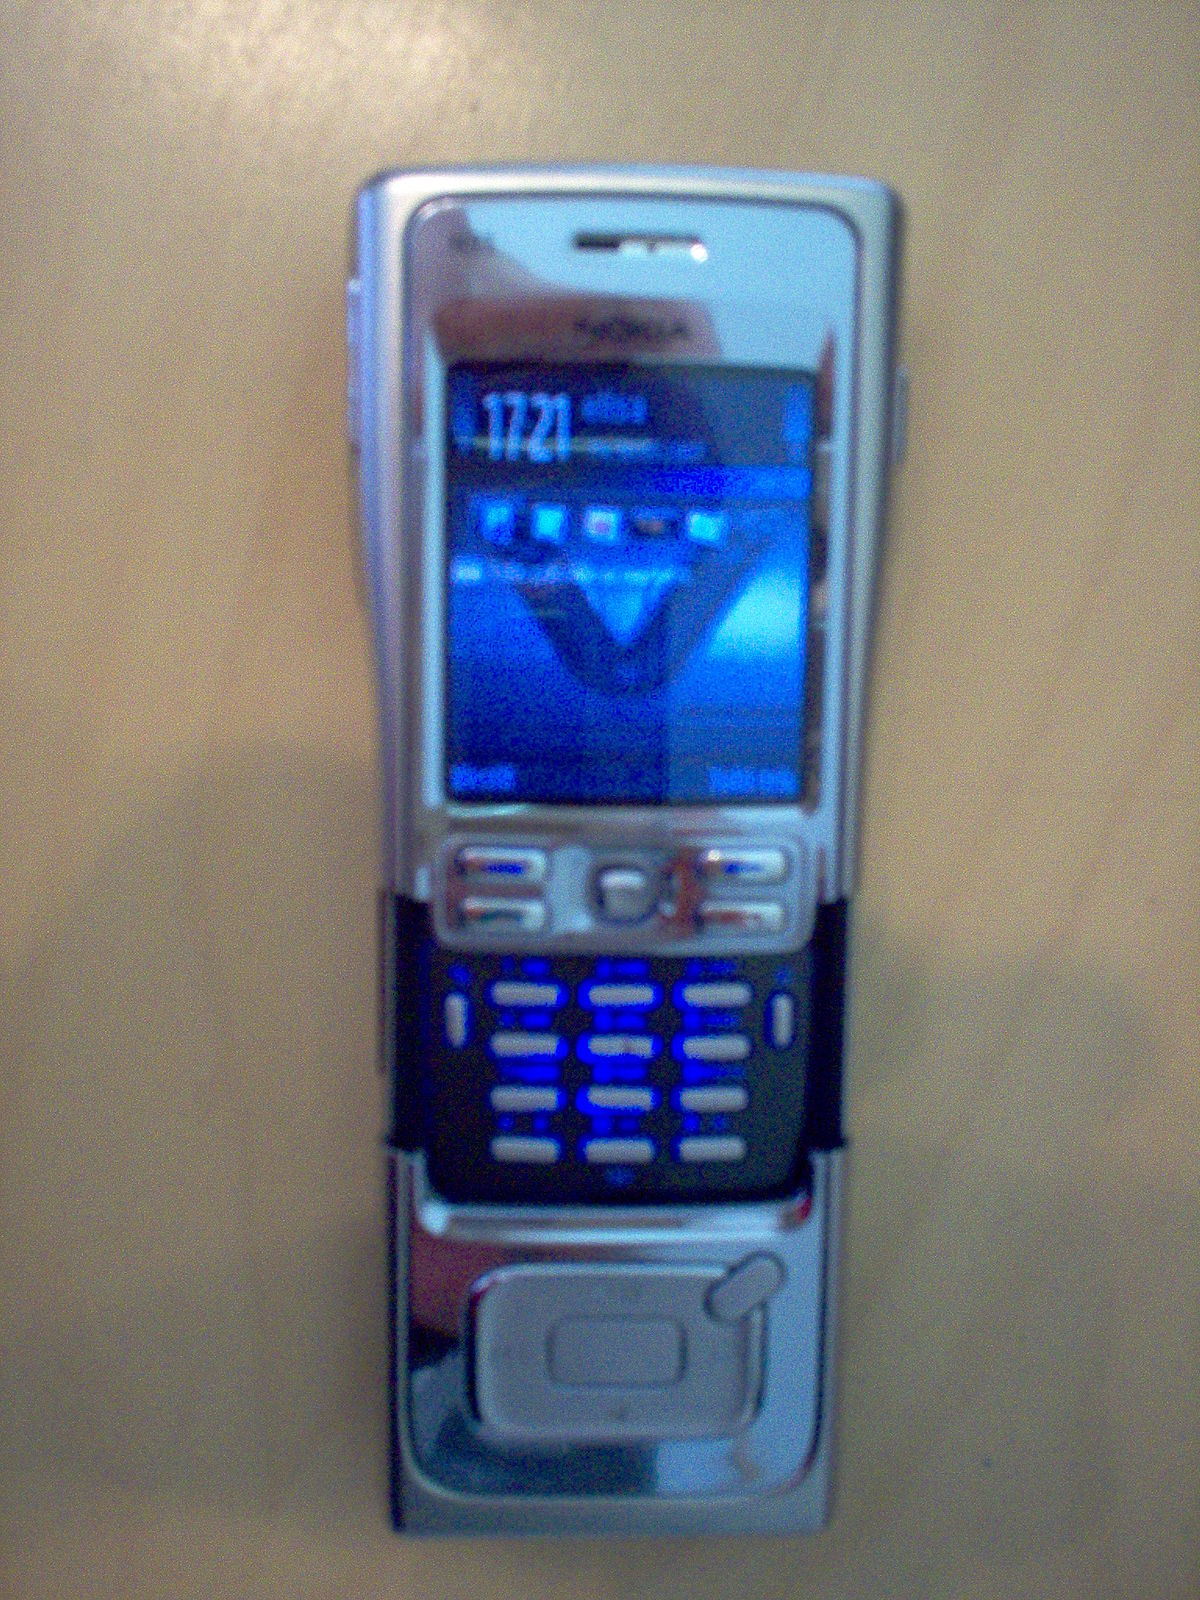 Nokia x5 00 images amp pictures becuo - Nokia X5 00 Images Amp Pictures Becuo 5